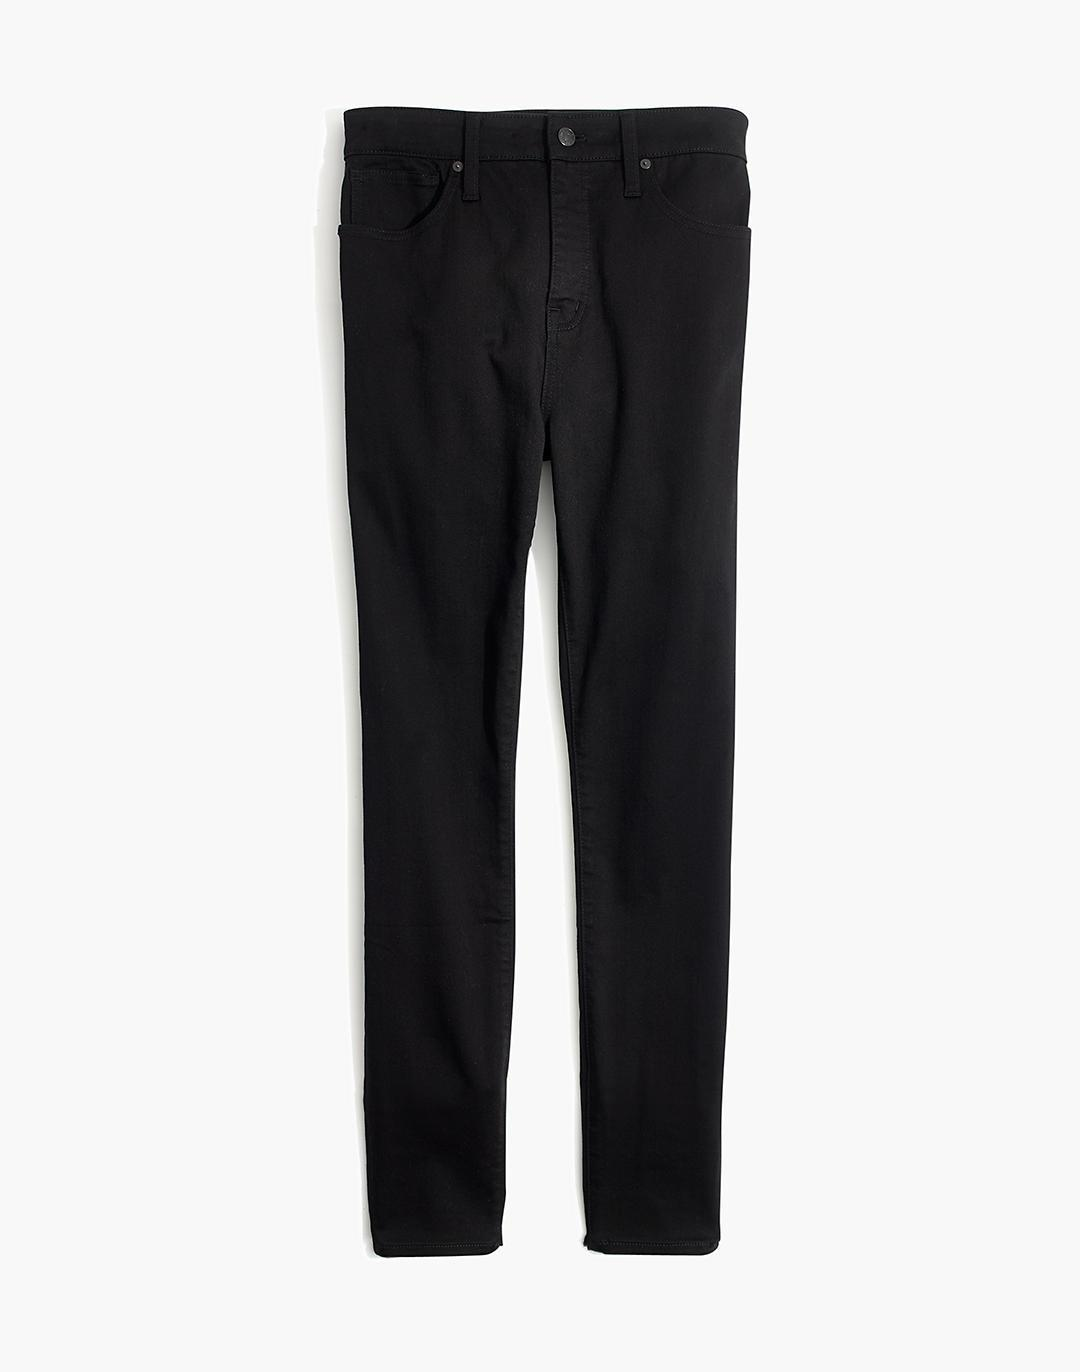 Curvy High-Rise Skinny Jeans in Carbondale Wash 3